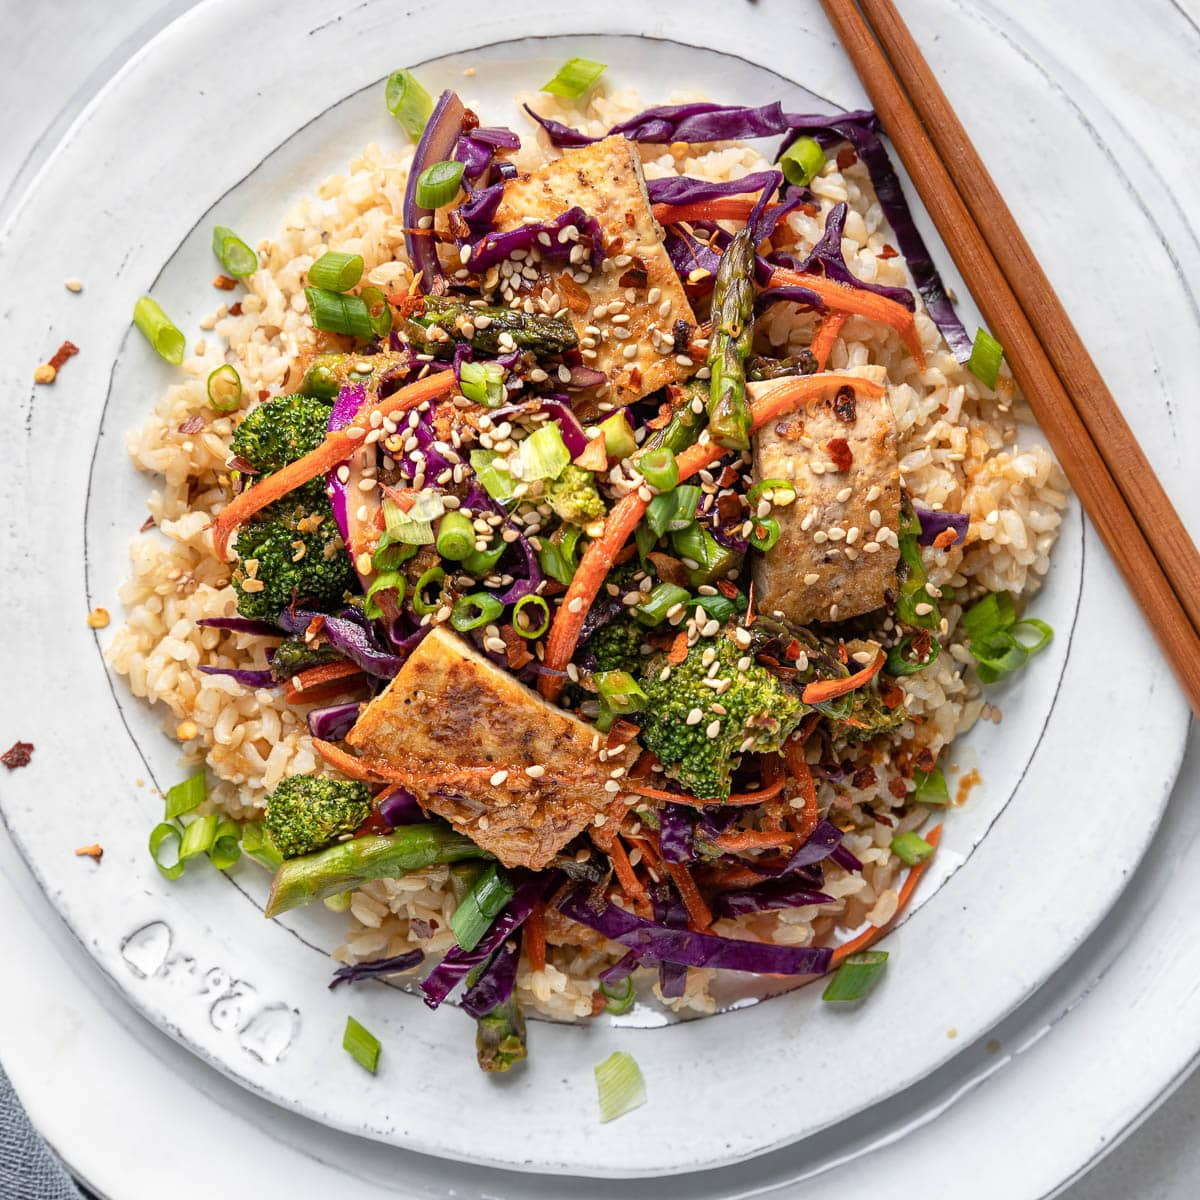 Honey and Ginger Tofu Stir Fry with Brown Rice